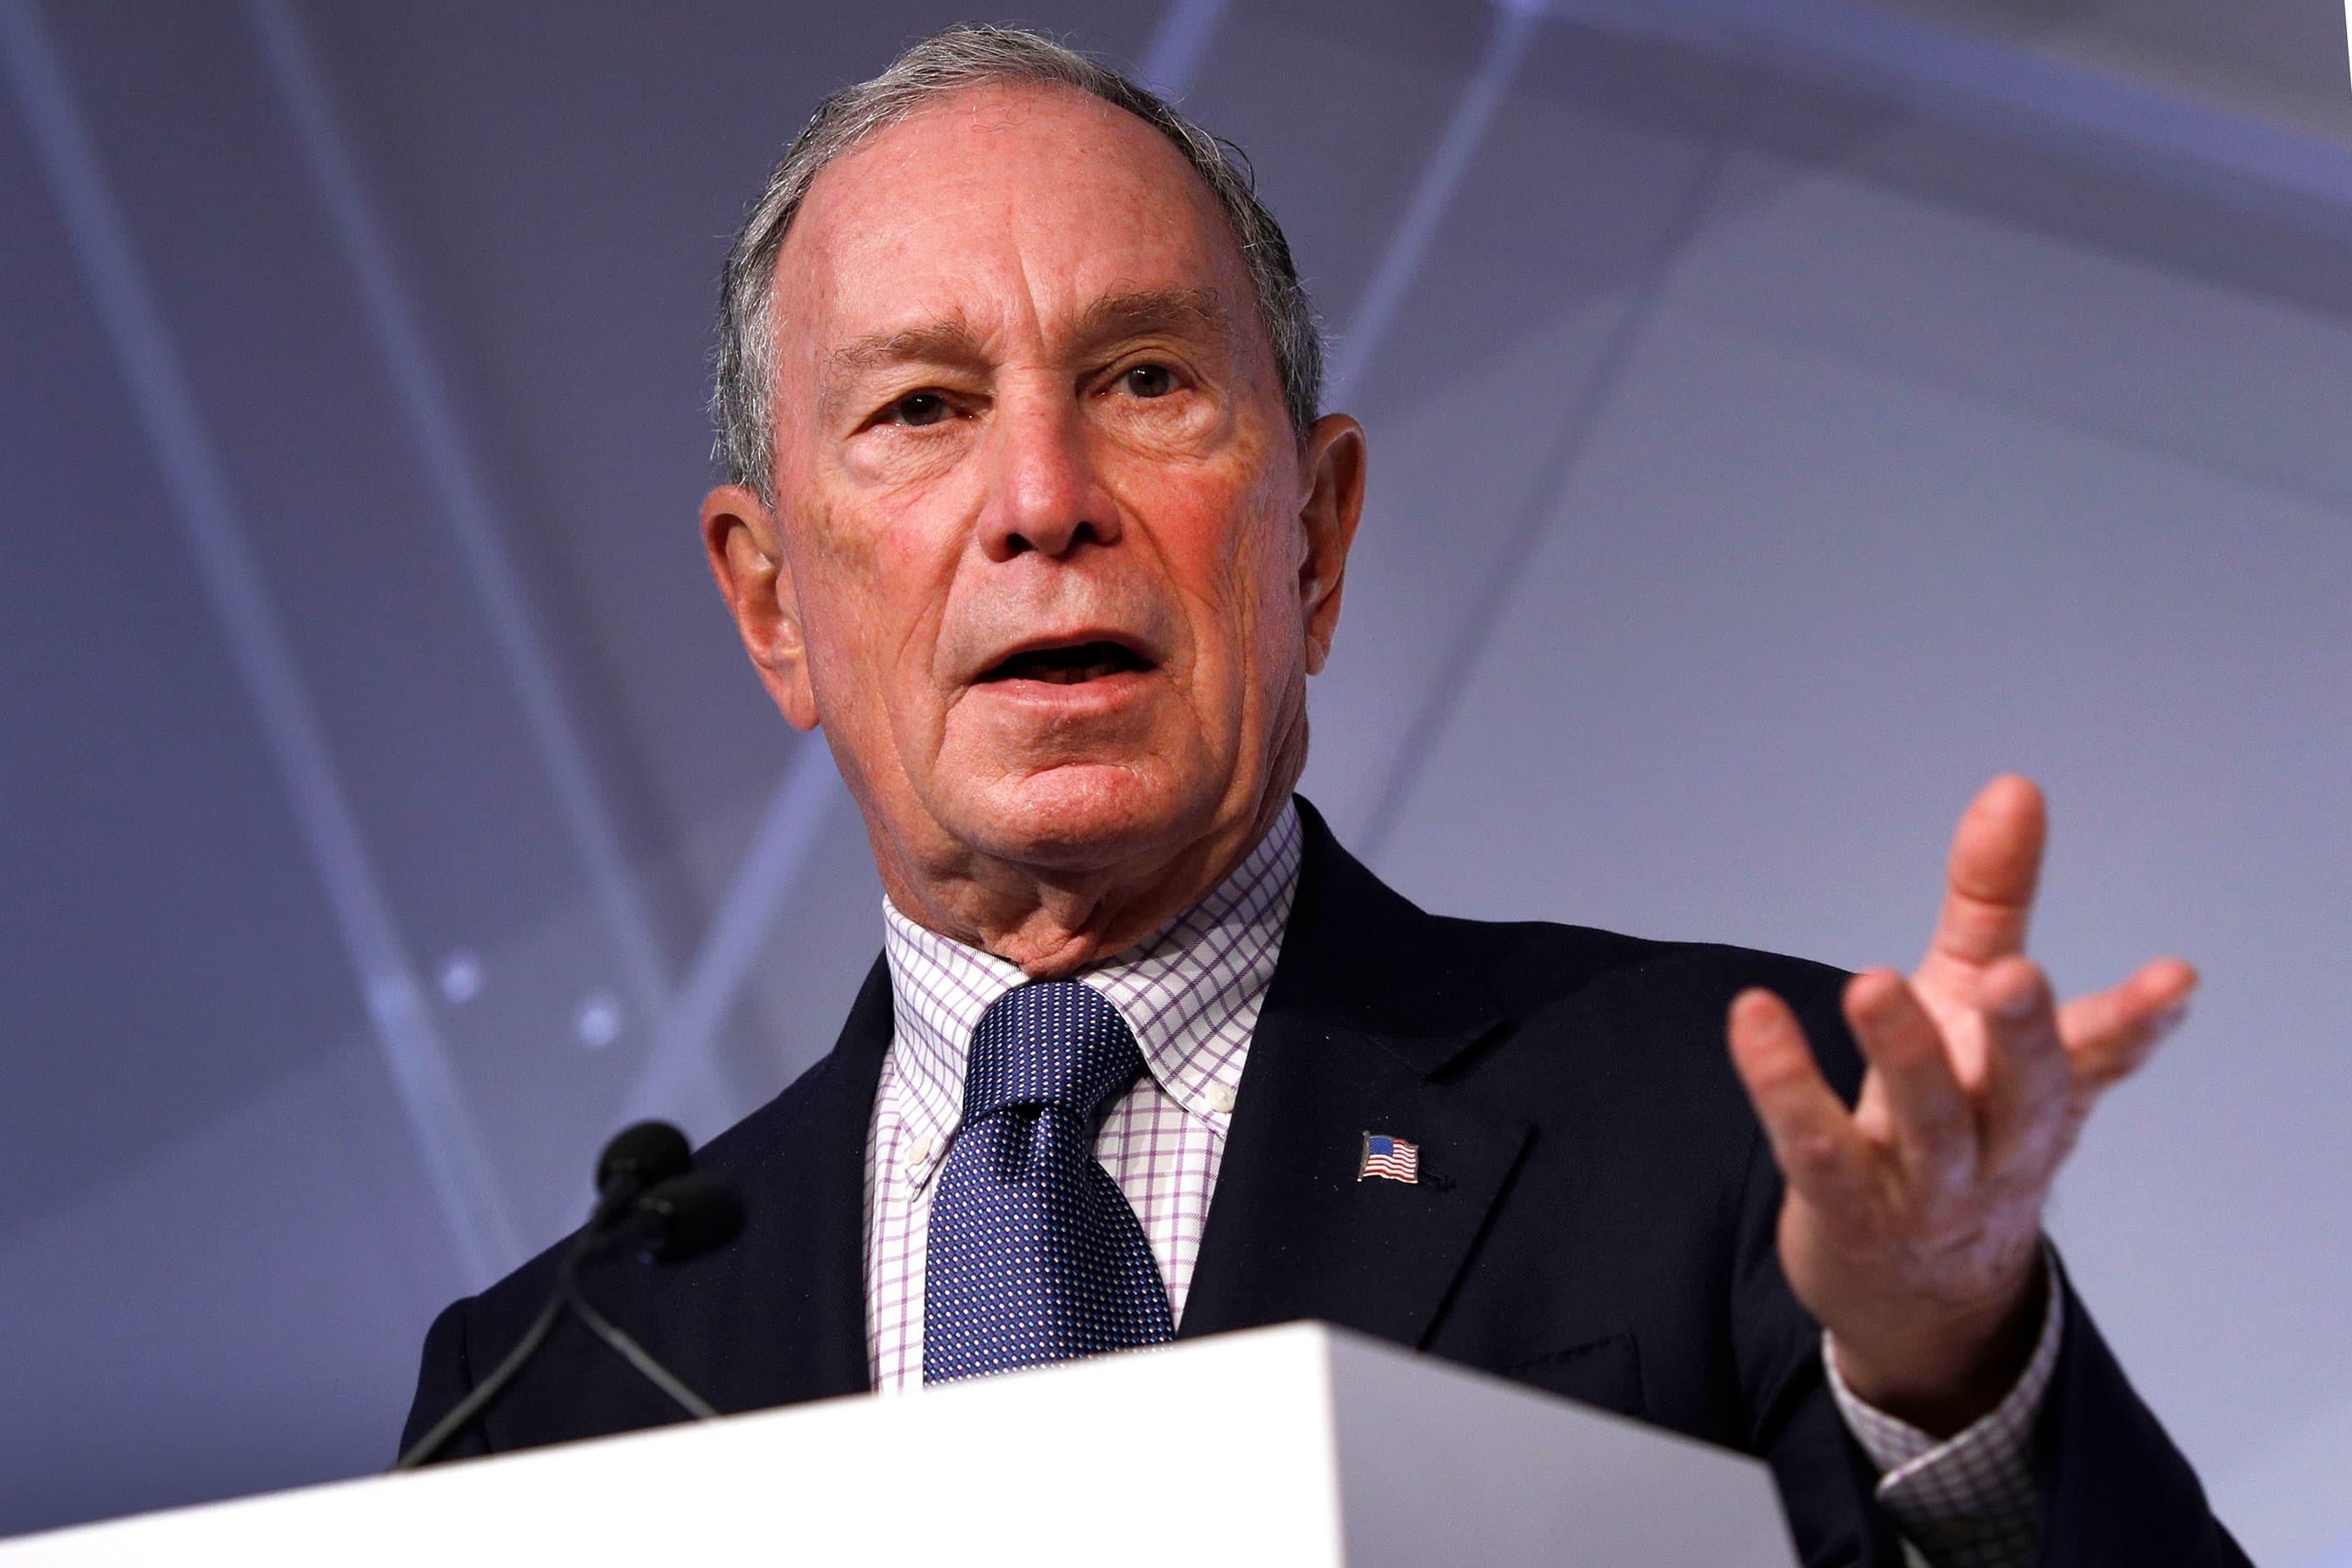 Mike Bloomberg owns a New York condo in a Trump property